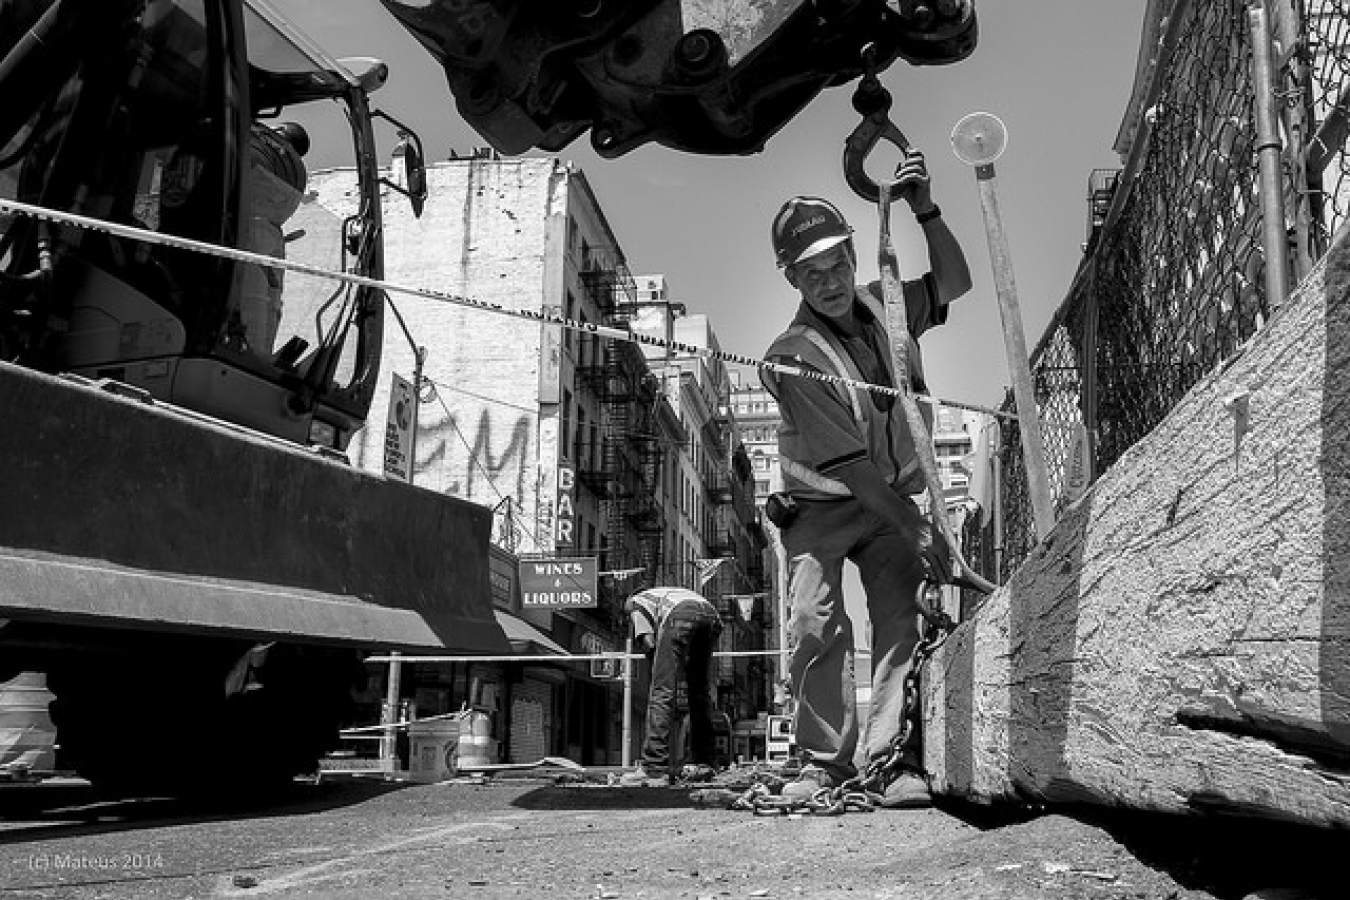 Construction Site in New York